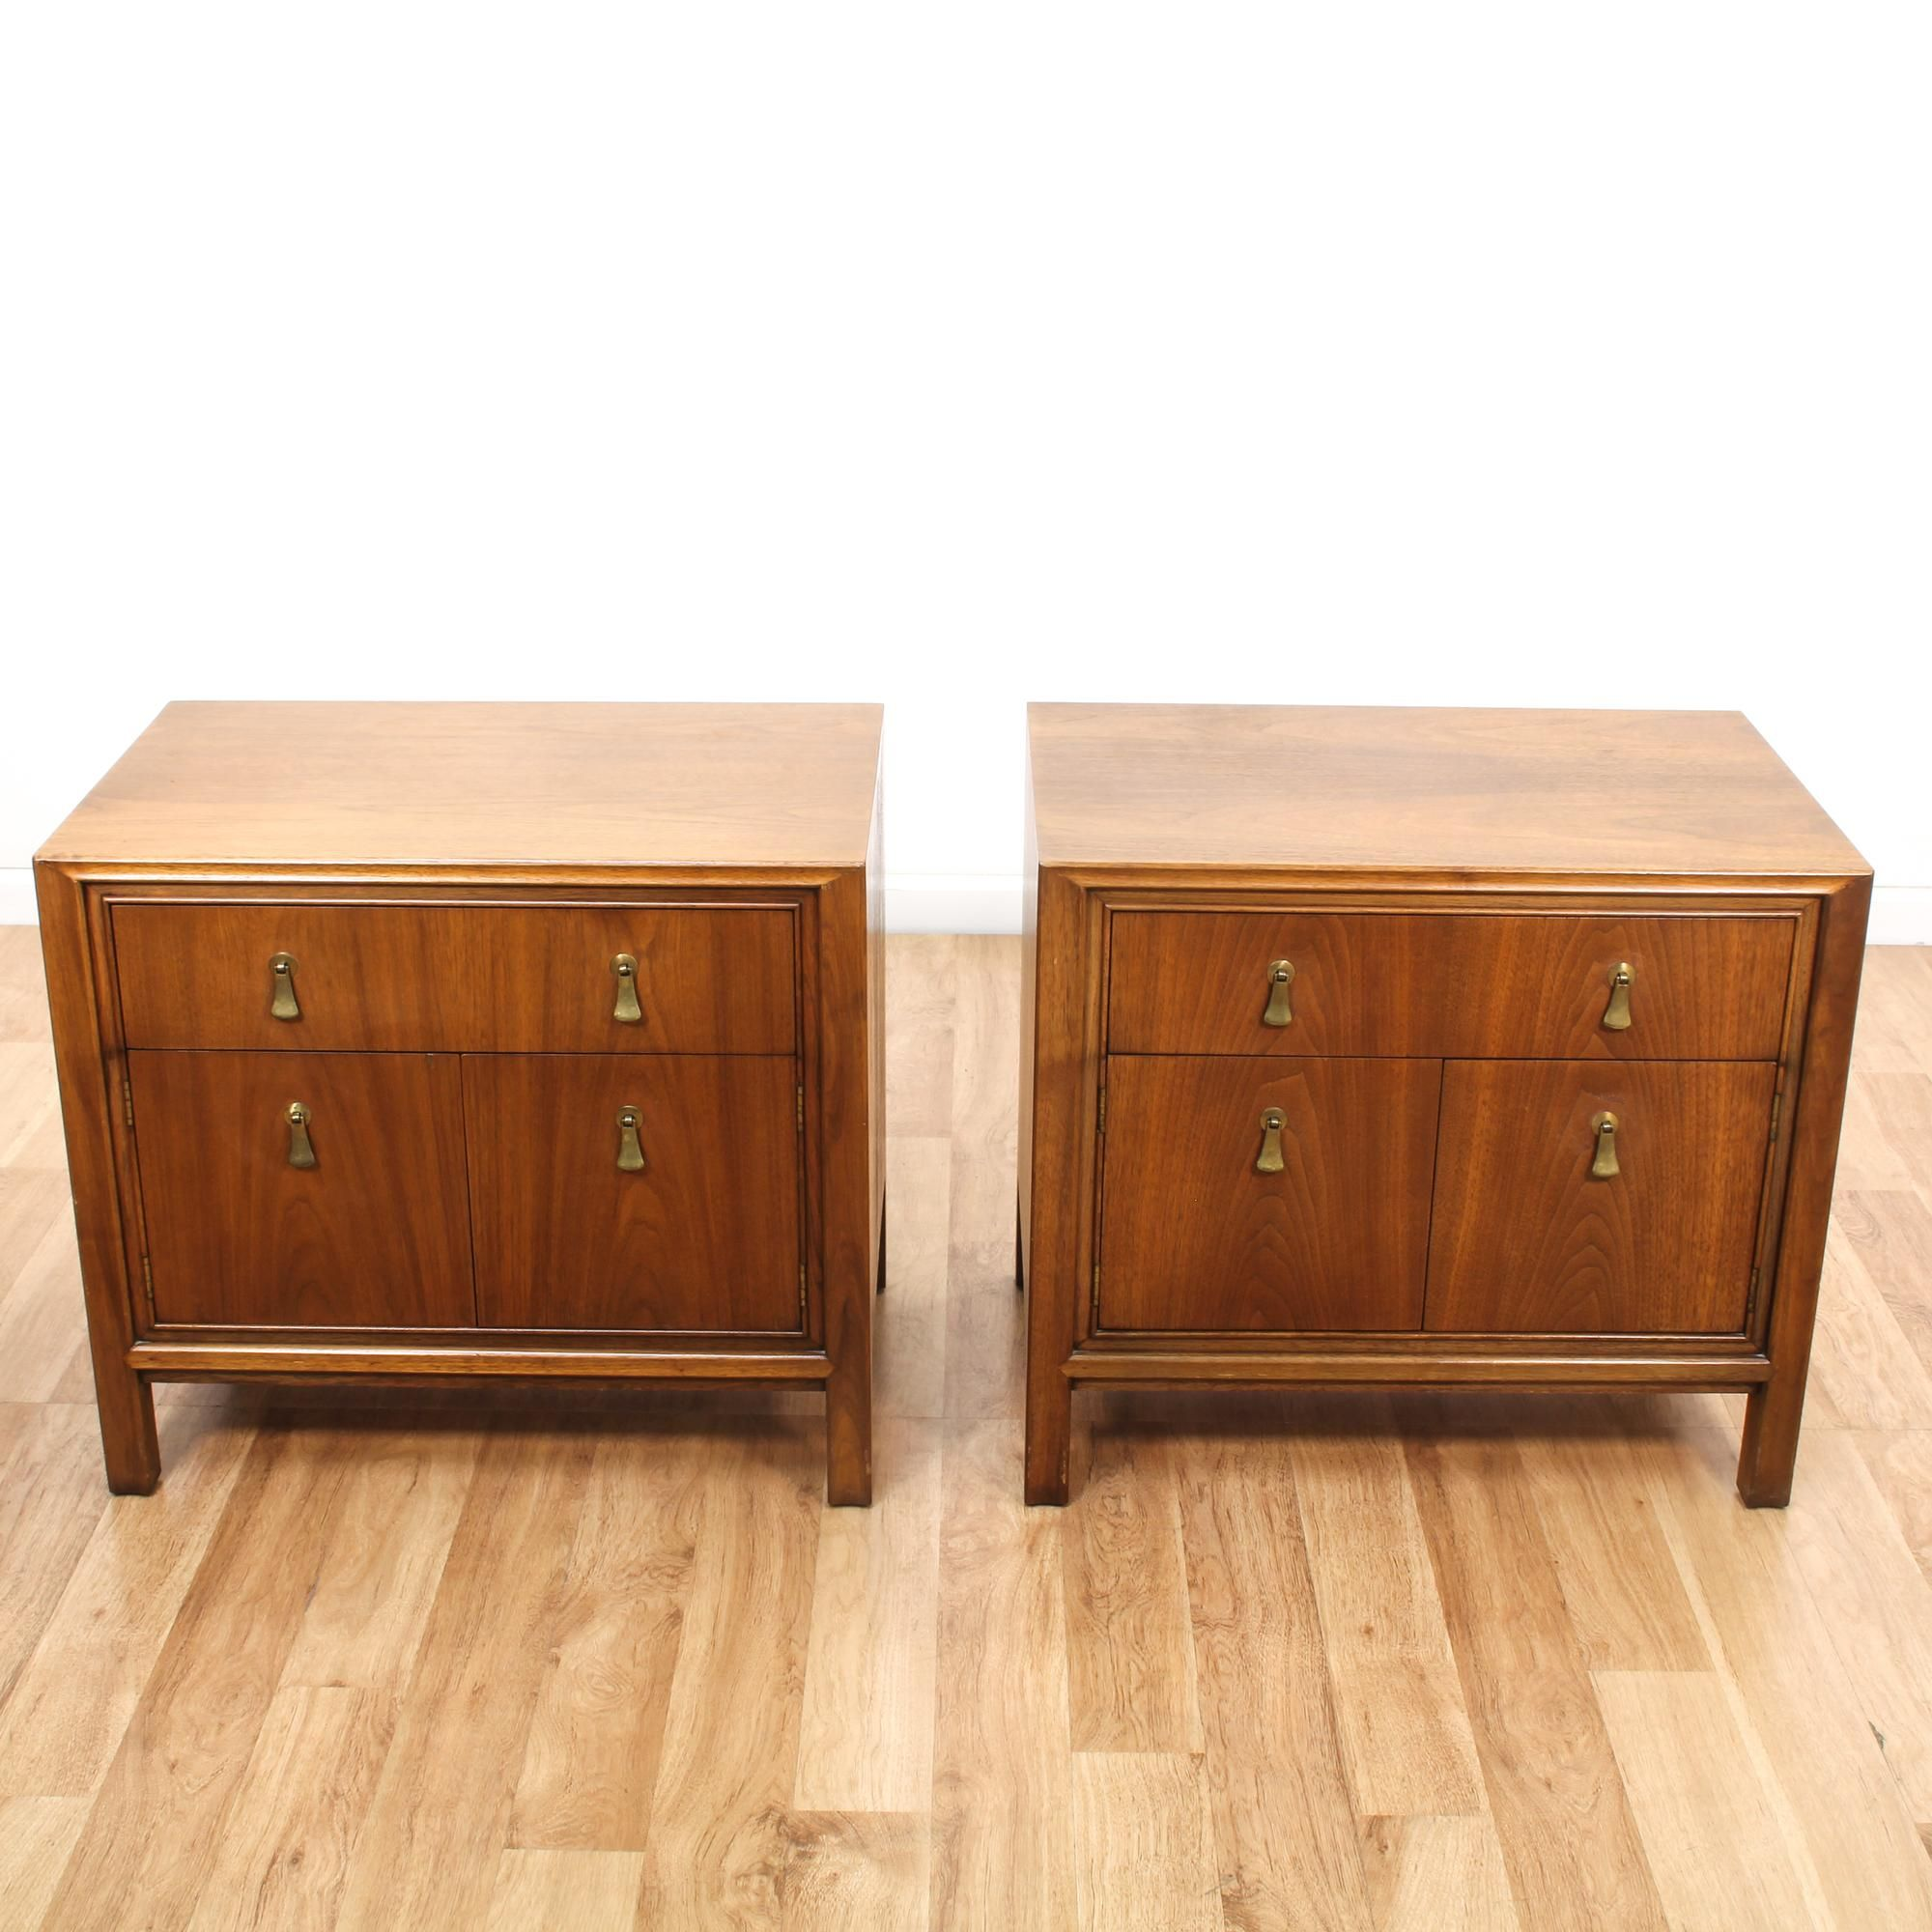 These Mount Airy Nightstands Are Featured In A Solid Wood With A